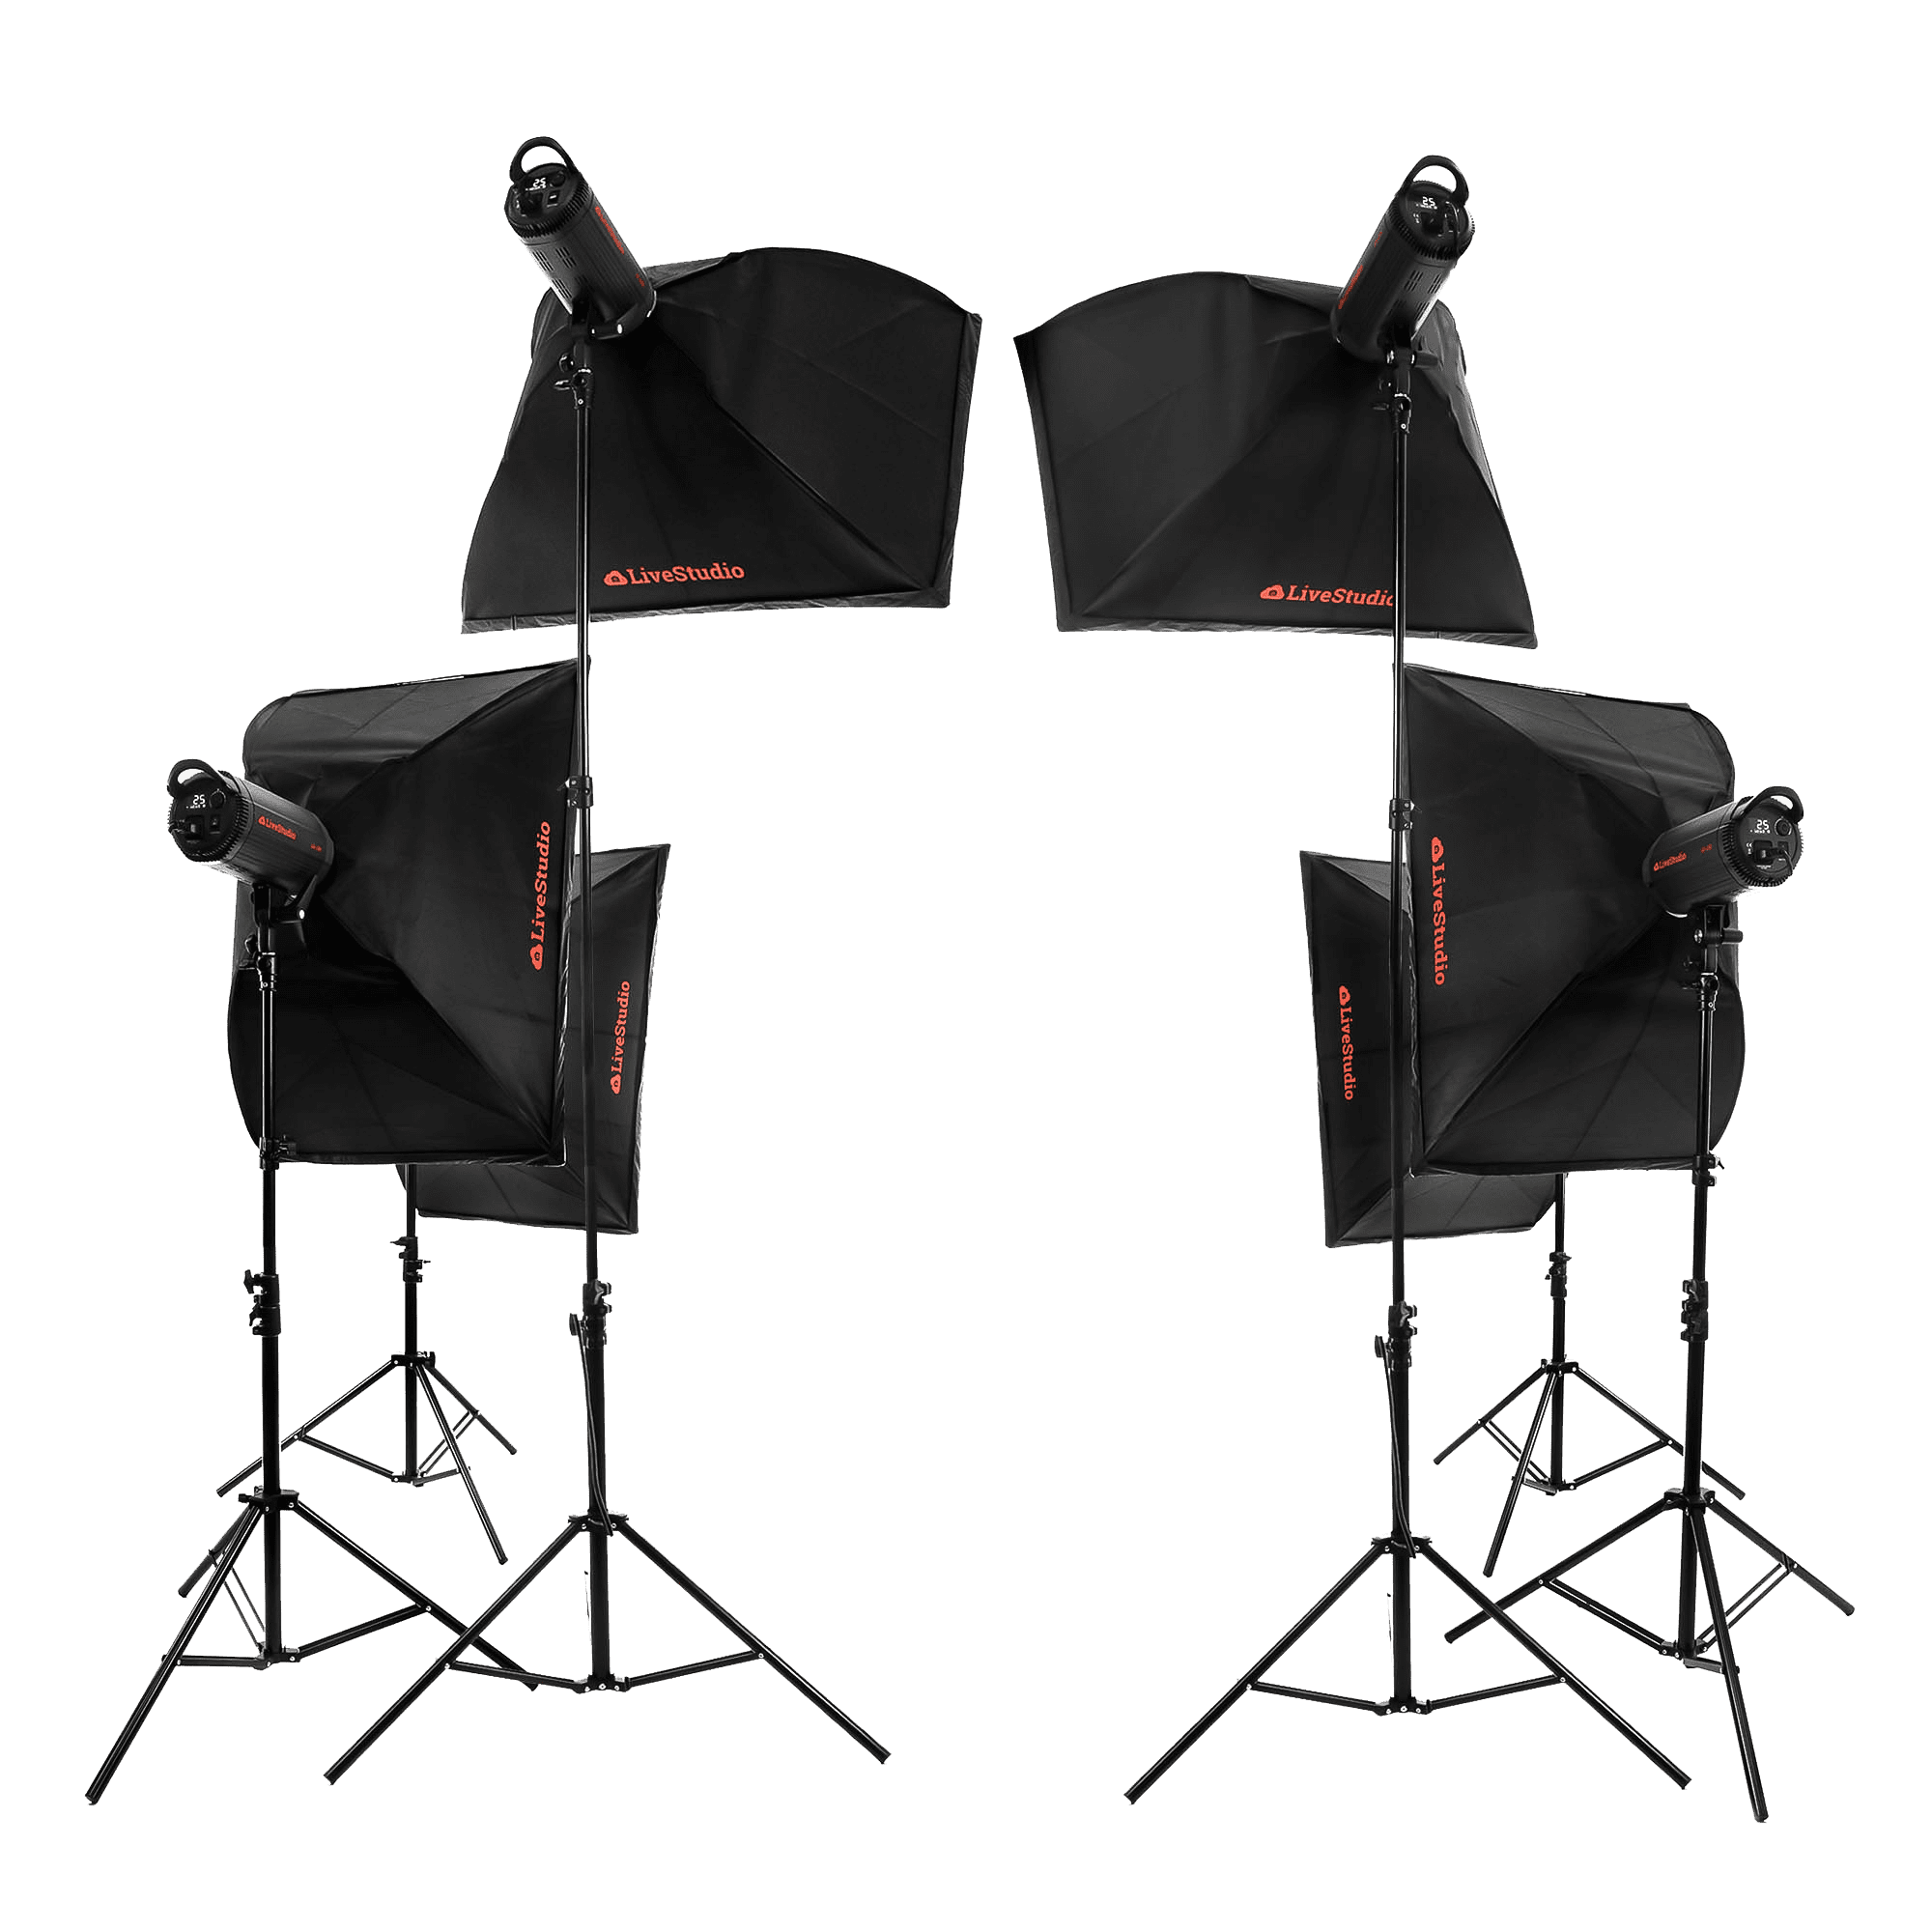 Ortery LiveStudio - 6 light product photography kit and software